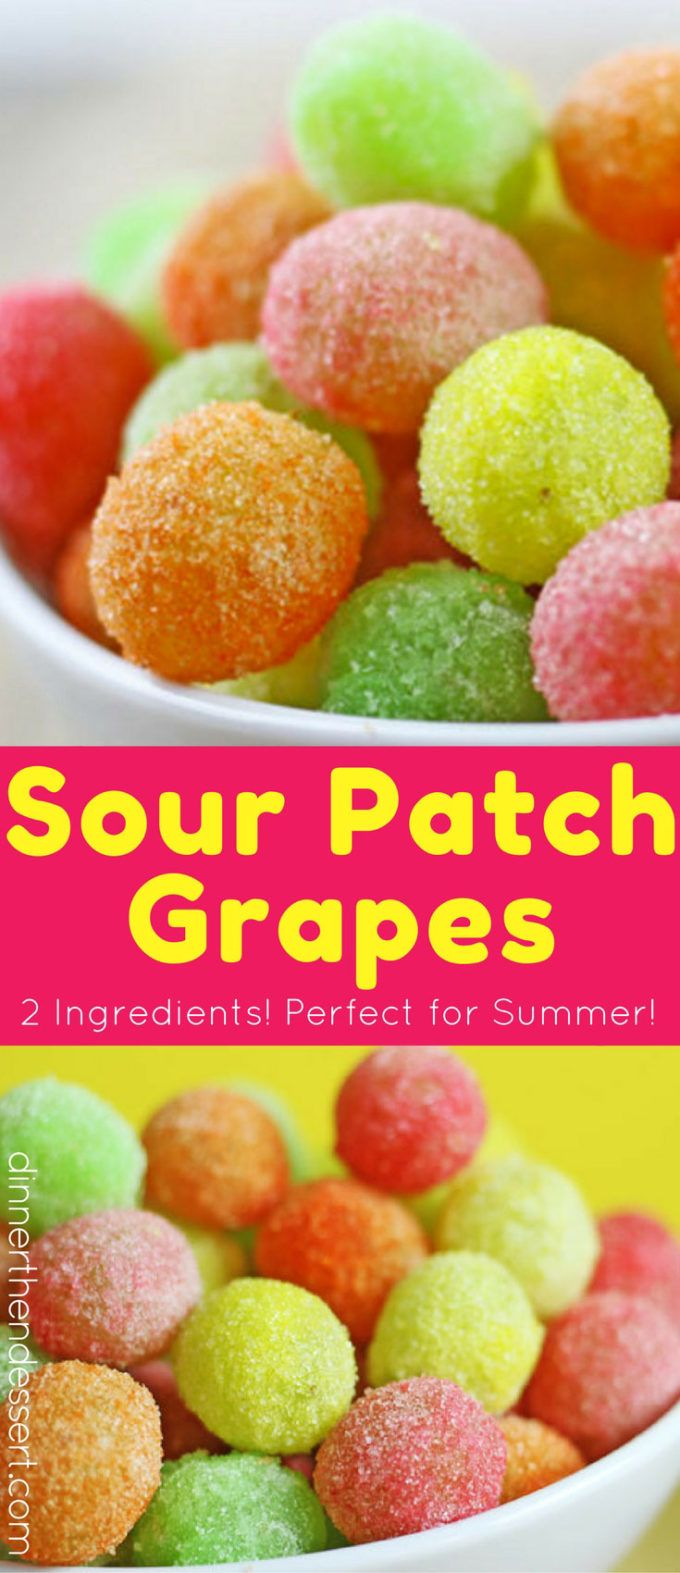 Sour Patch Grapes Are A Great Sour Candy Fix With Only Two Ingredients Sour Patch Grapes Recipes Sour Patch Grapes Healthy